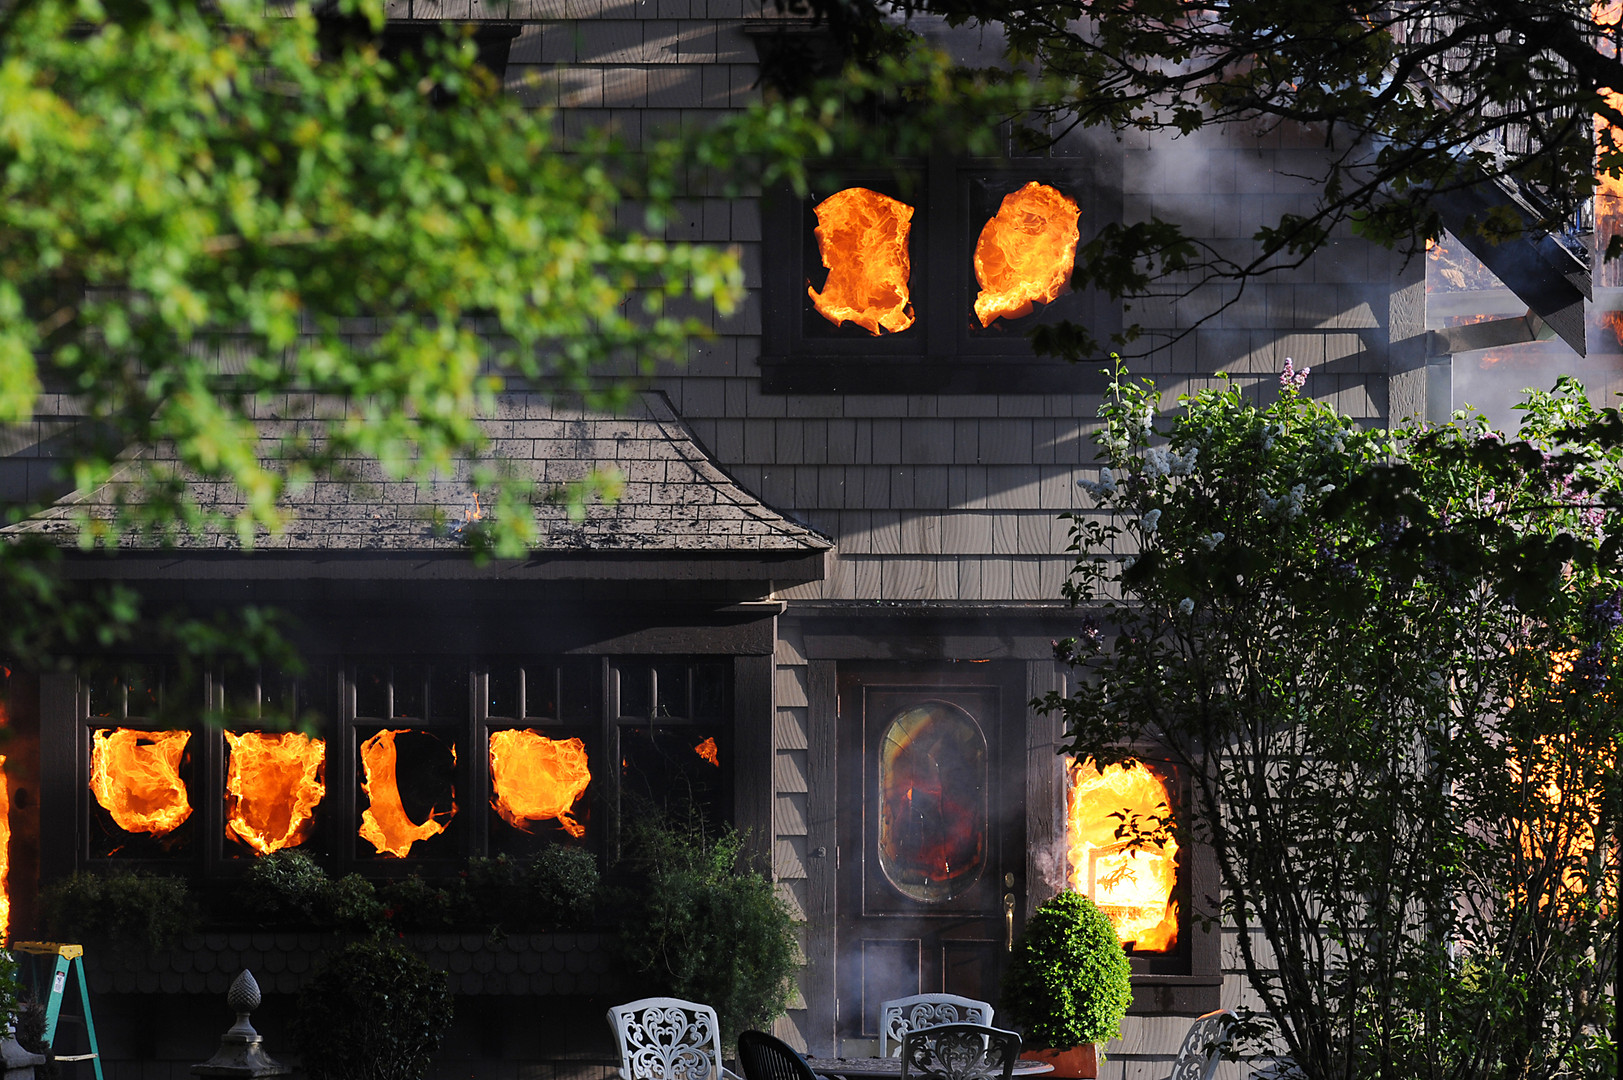 A fire broke out in a North Bend home on East Bay Drive just before 6 p.m. on Tuesday. North Bay and North Bend firefighters were on scene extinguishing the flames that enveloped the home. (The World newspaper)